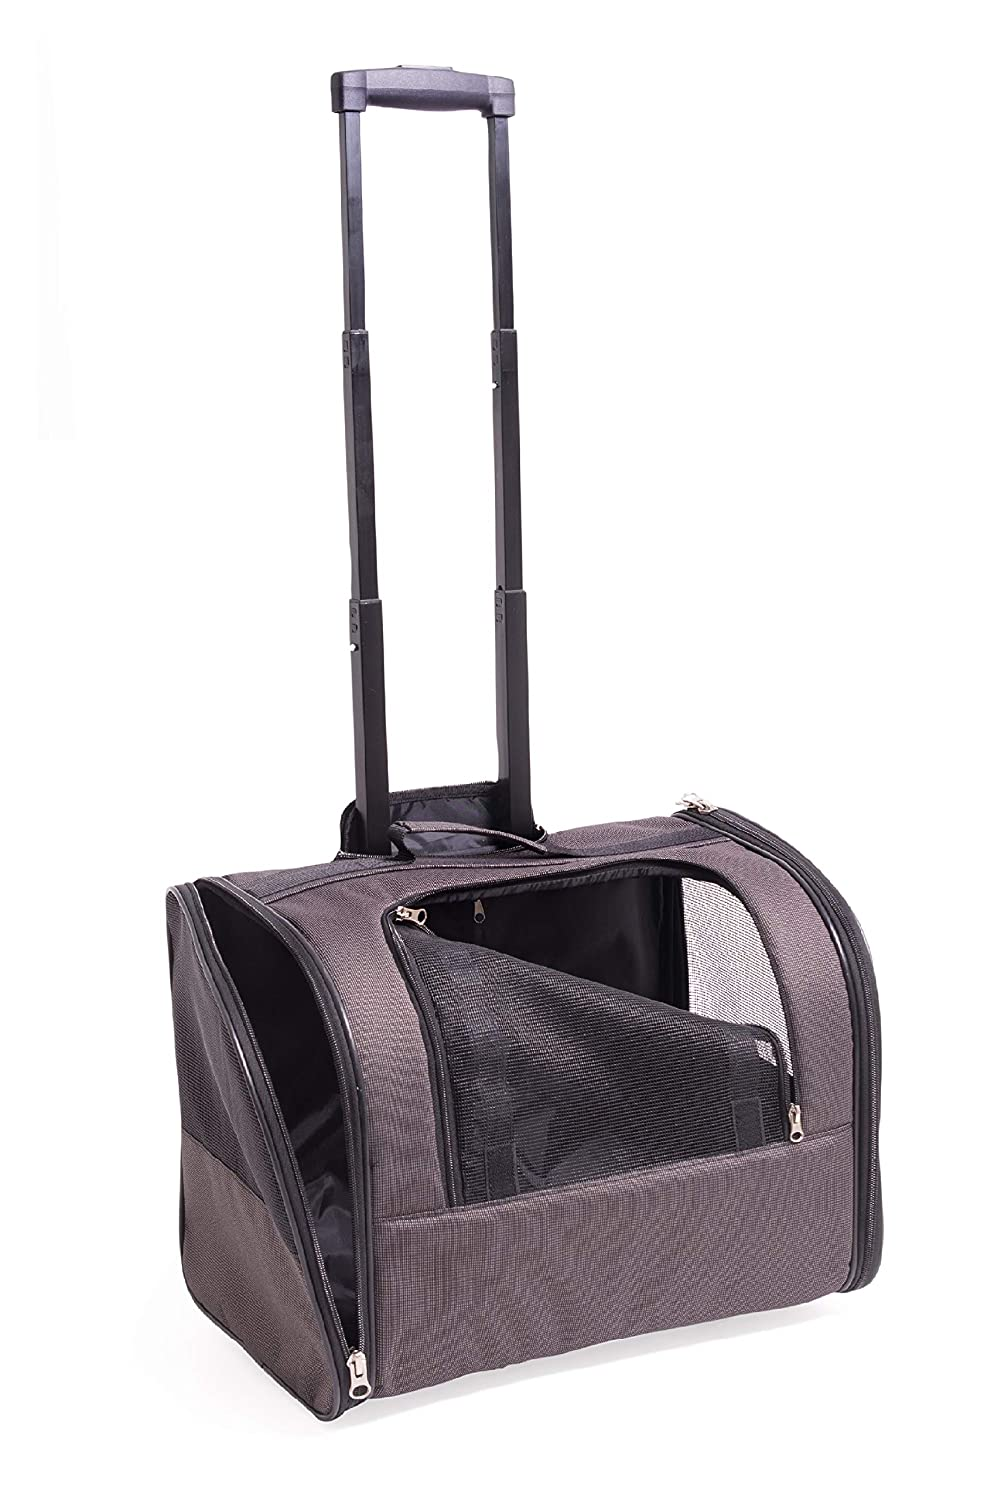 Farm Company Comfort 8058773556608 Trolley 44 x 28 x 33 cm Anthracite